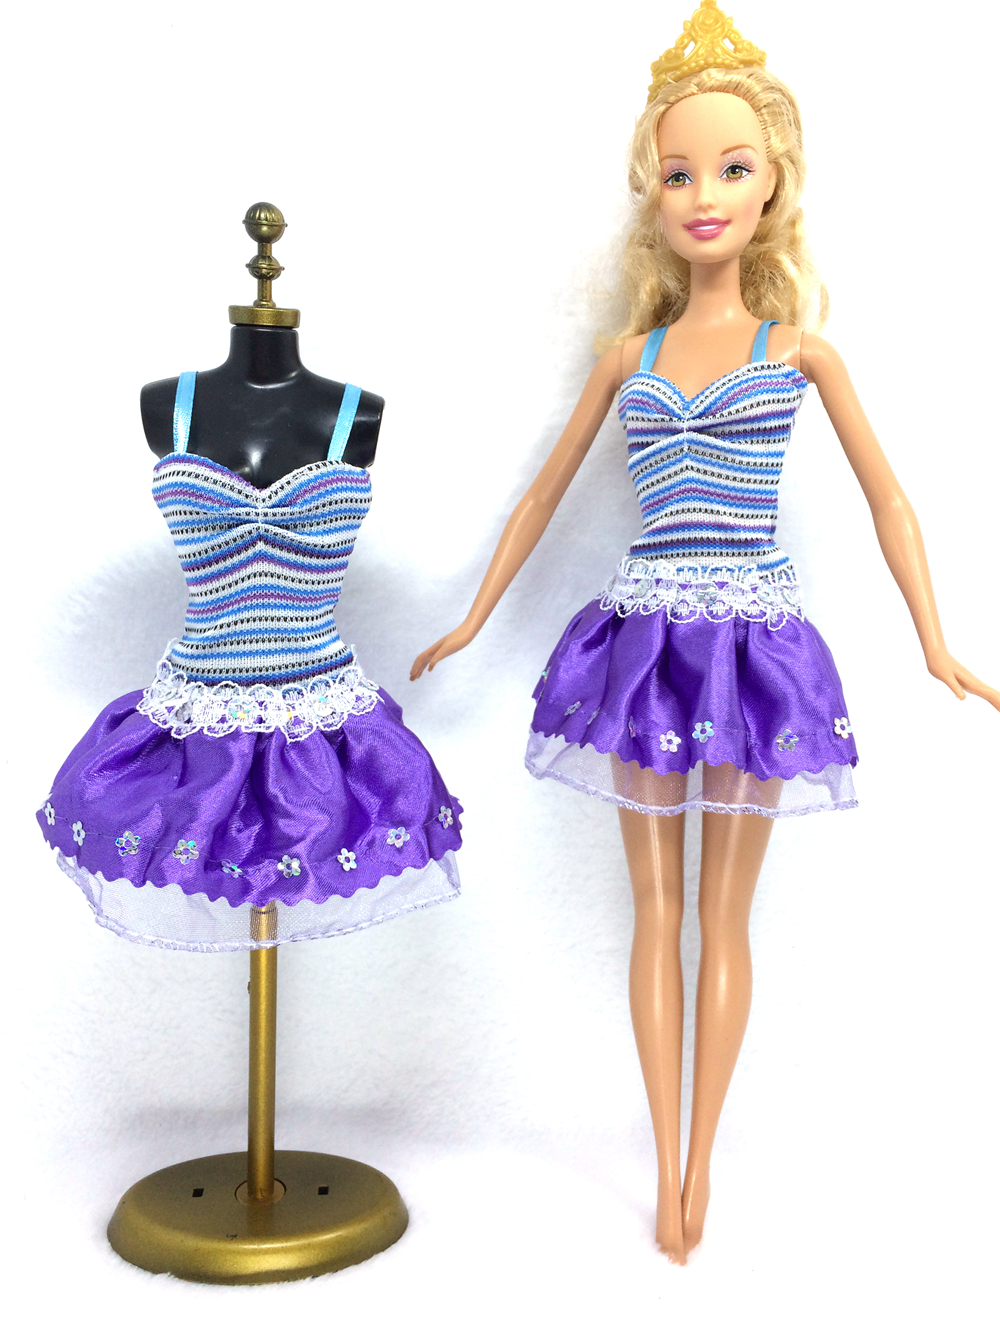 NK 2018 Newest Doll Dress Beautiful Handmade Party ClothesTop Fashion Dress For Barbie Noble Doll Best Child GirlsGift 031A